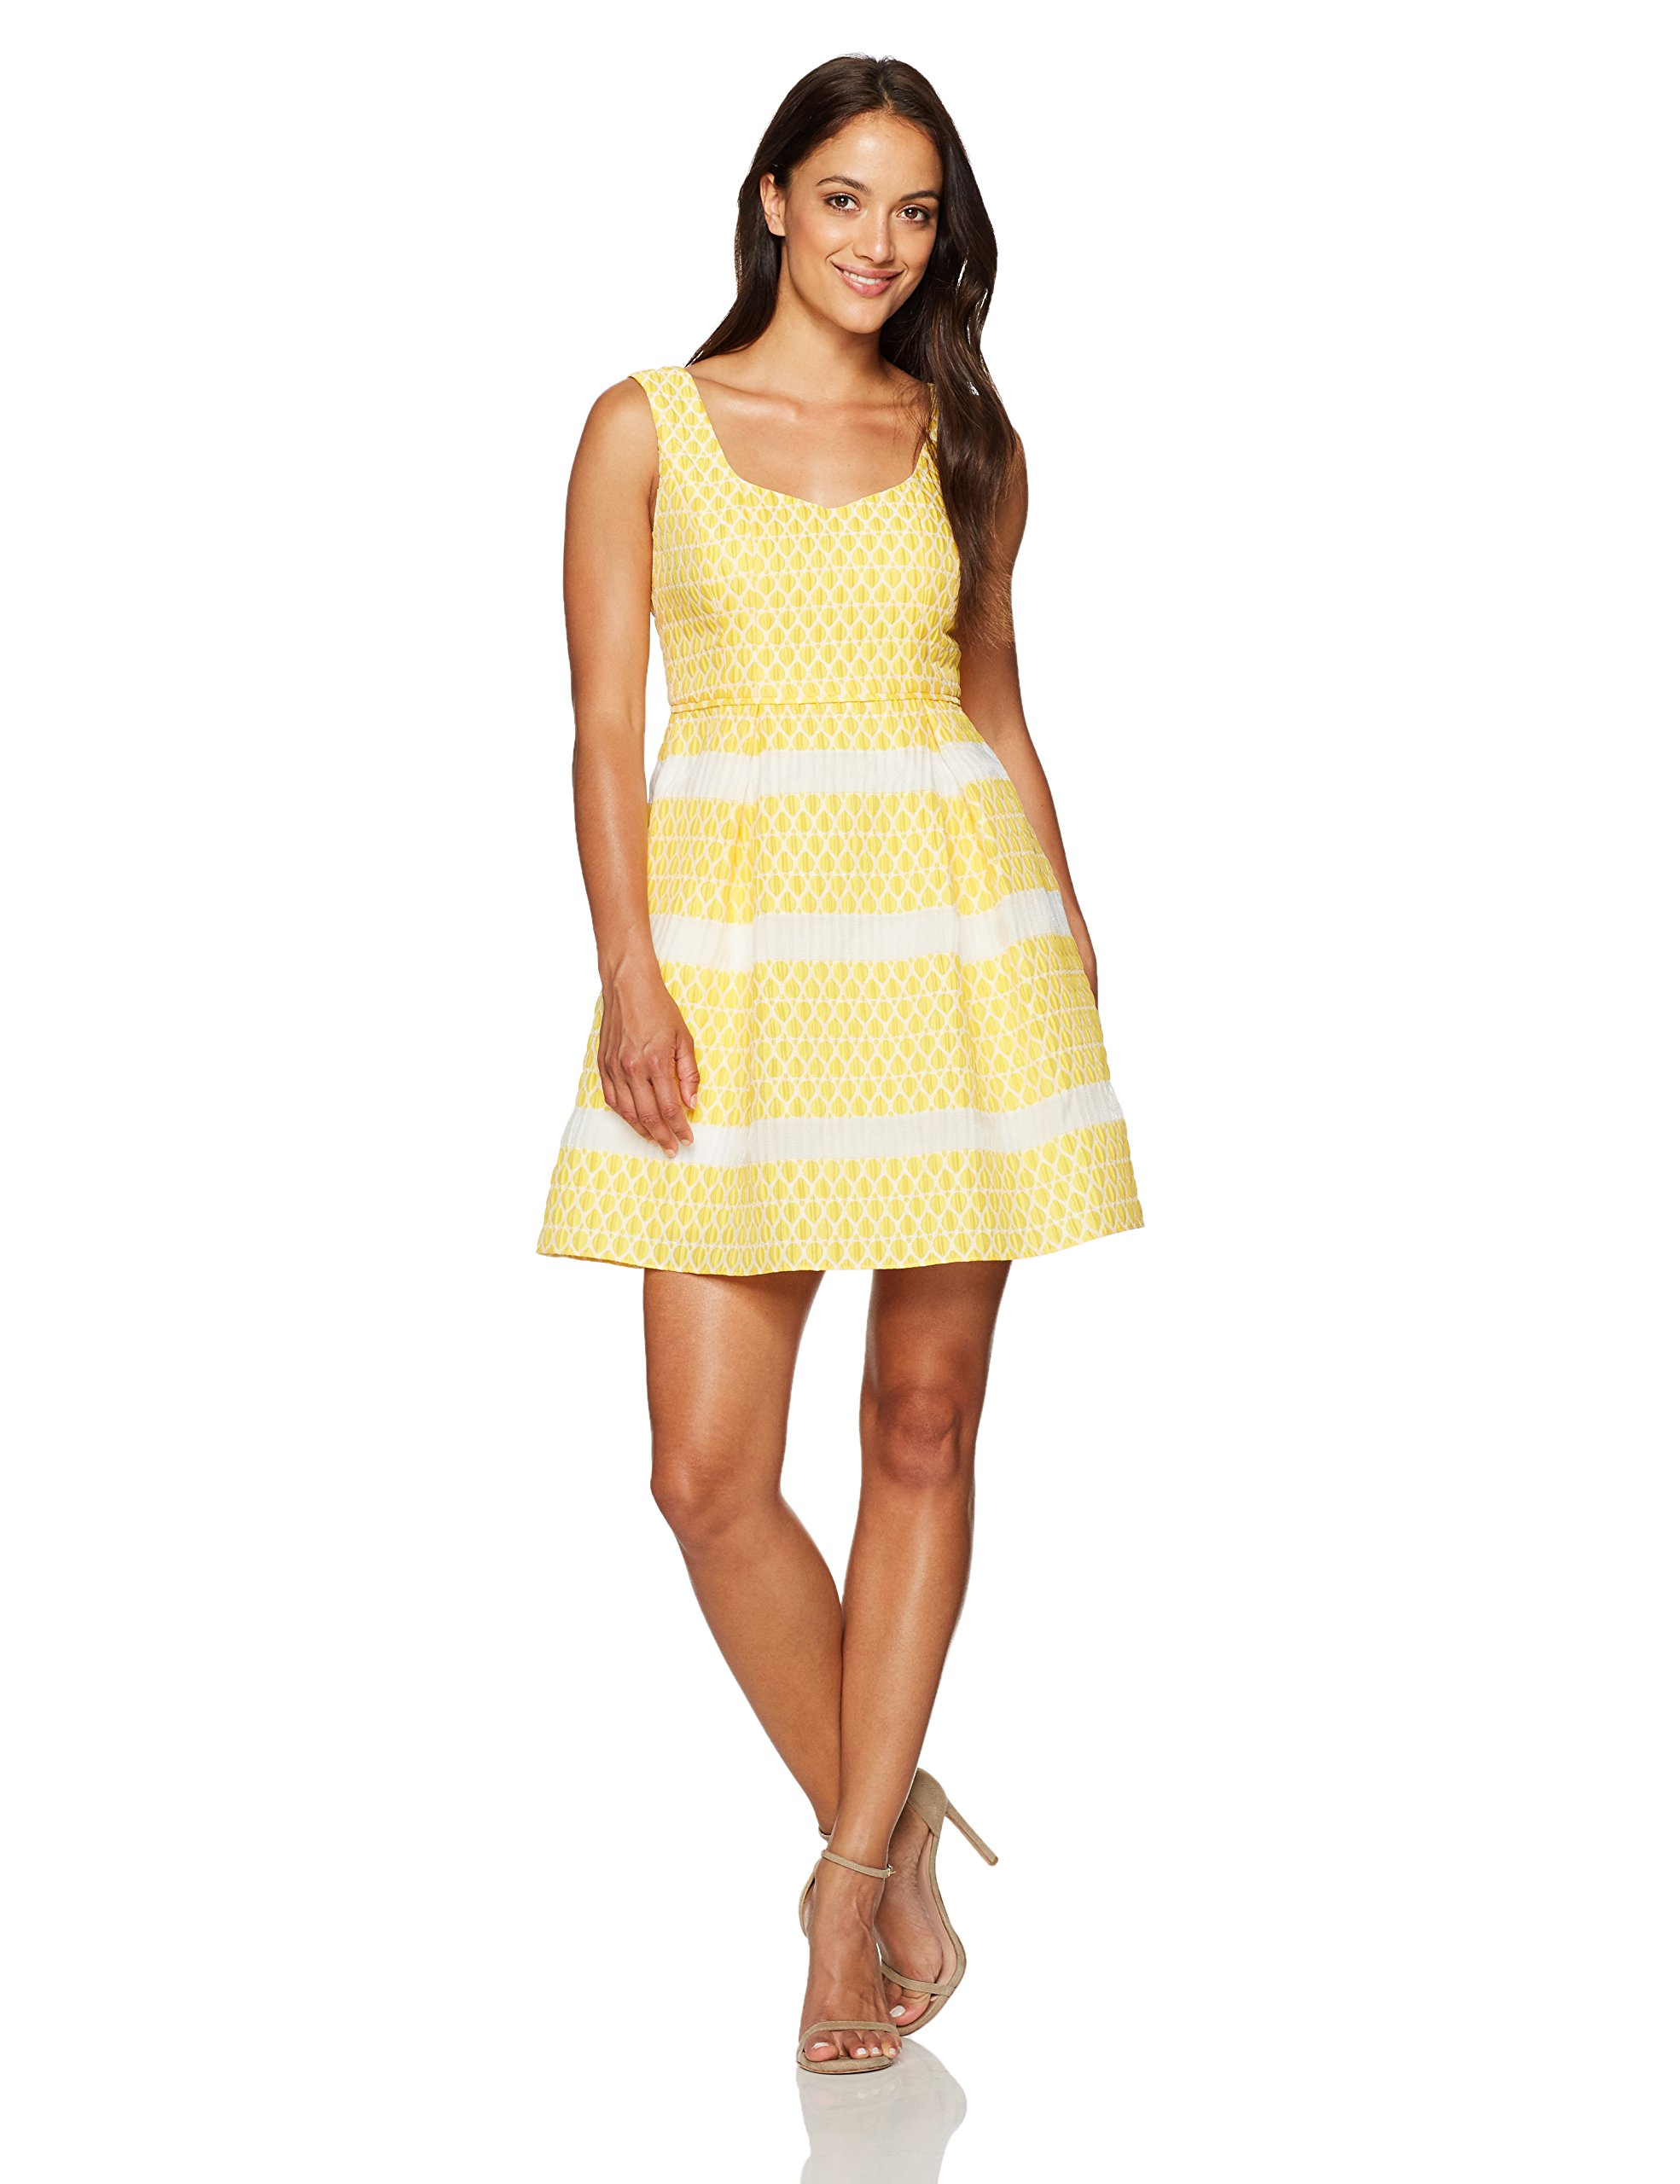 Adrianna Papell Women's Petite Fit and Flare Dress, Yellow/Ivory, 4P